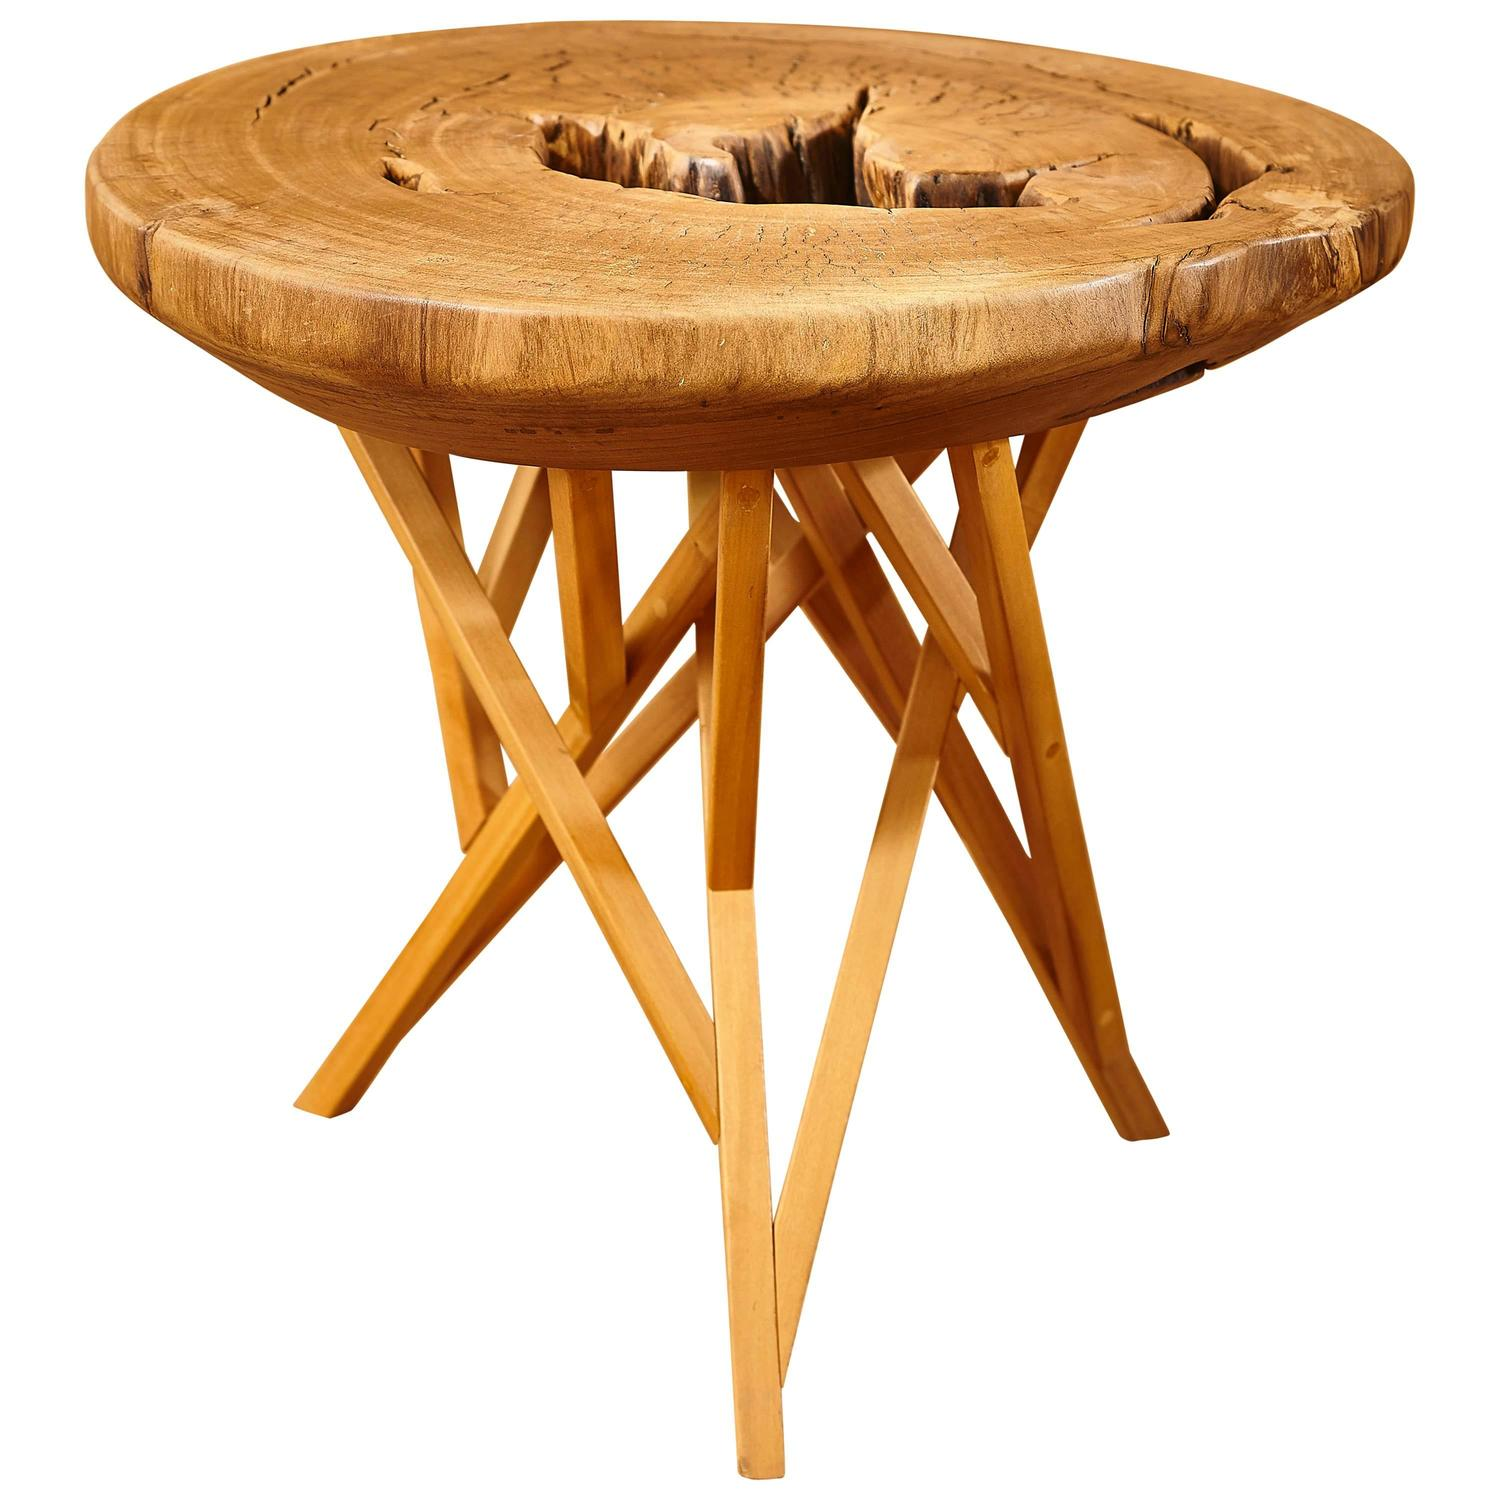 Moon table by projeto 2 for sale at 1stdibs for 1 2 moon table